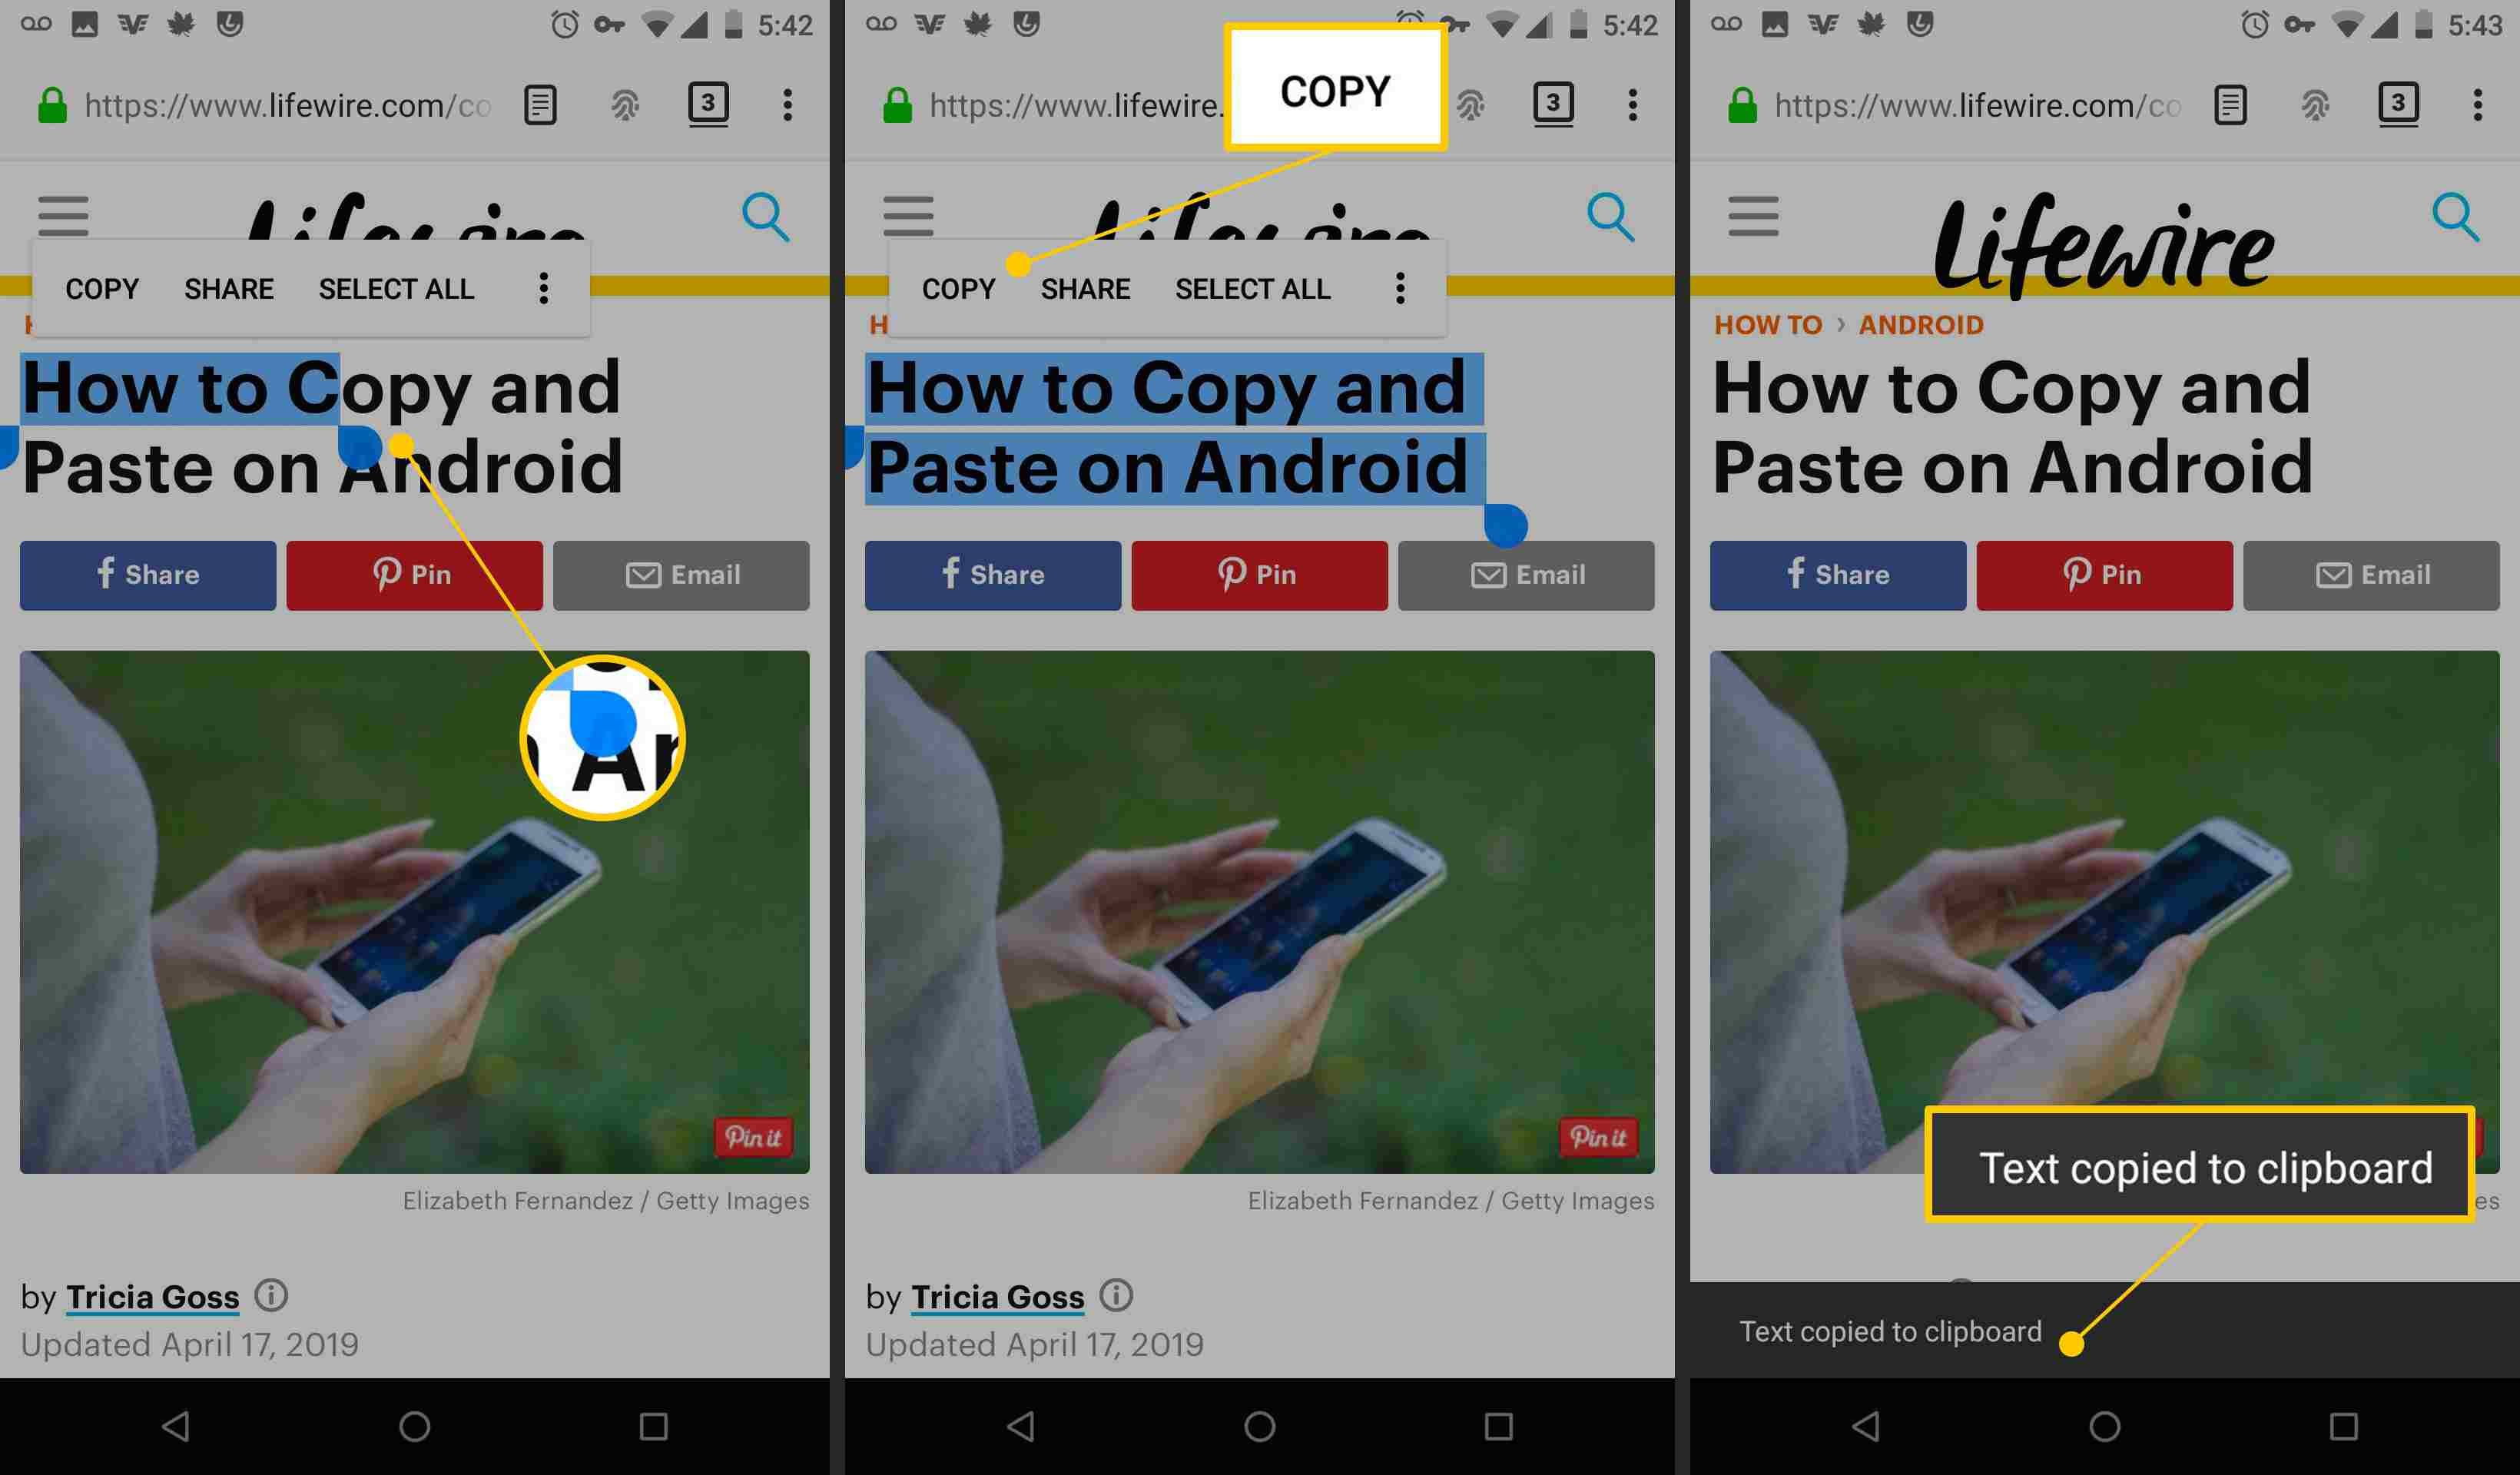 How to Copy and Paste on Android